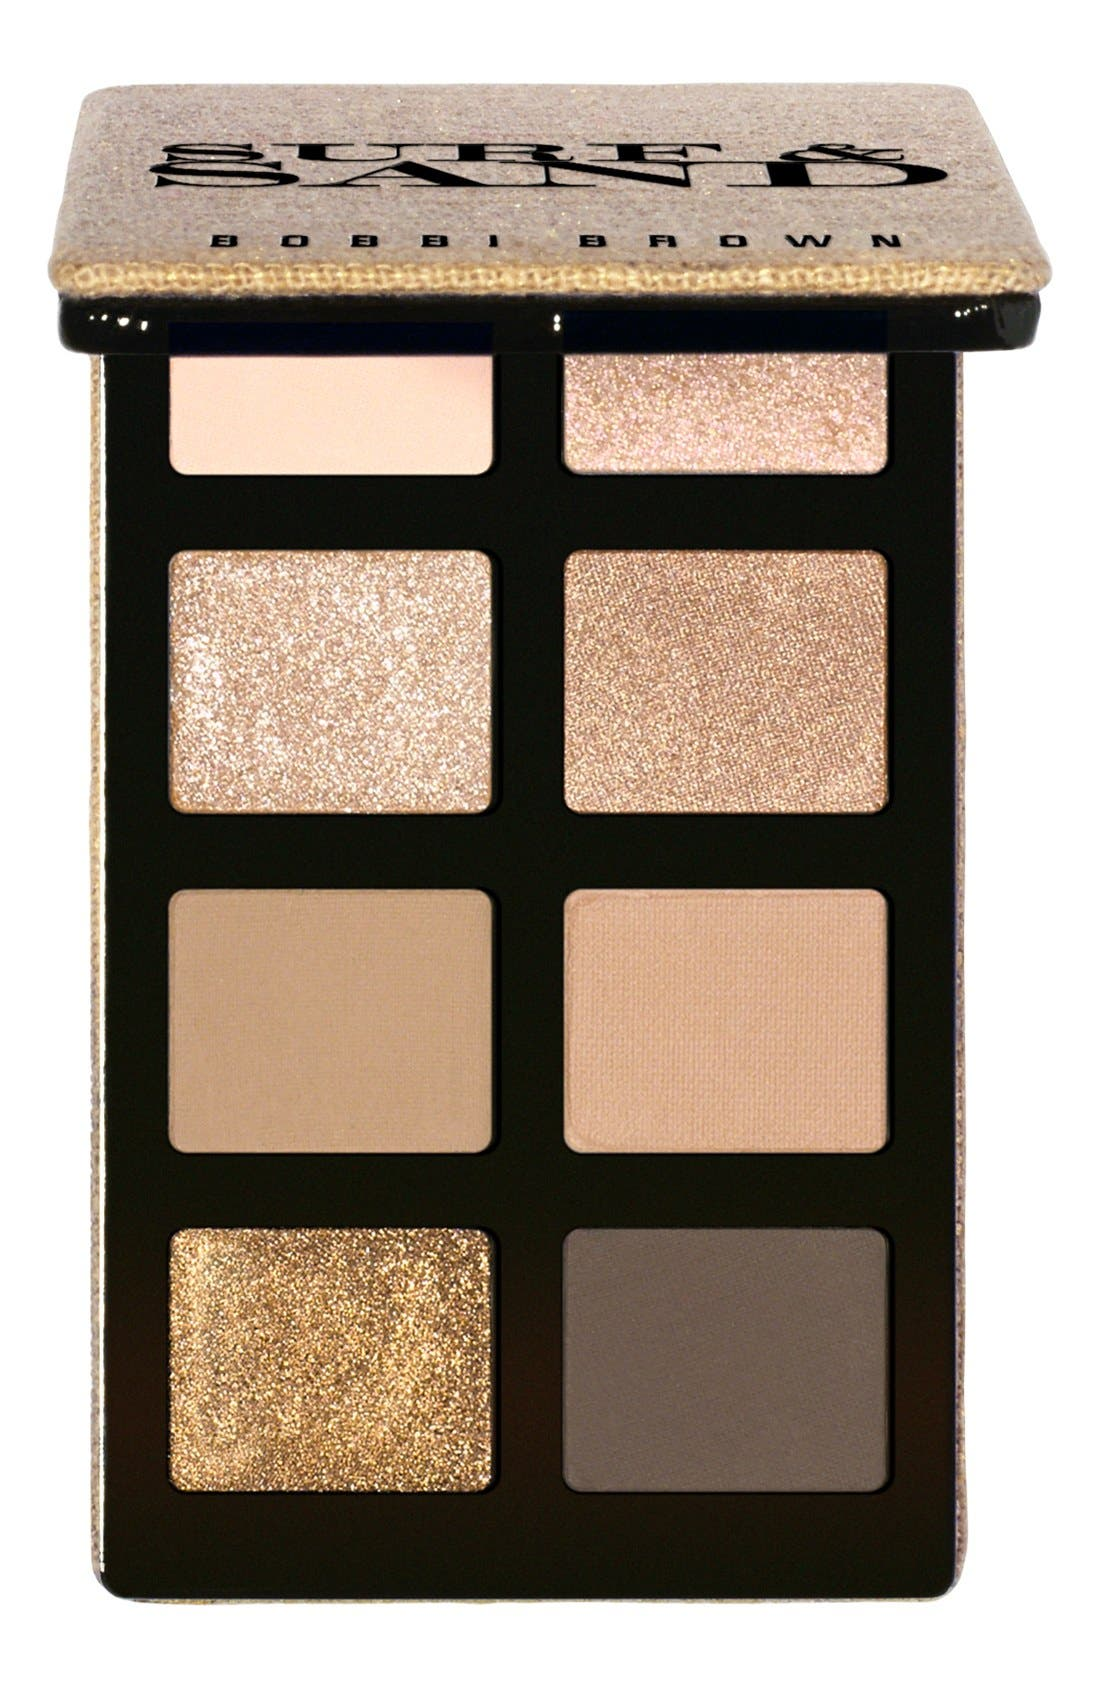 'Surf & Sand - Surf' Eyeshadow Palette,                         Main,                         color, 250